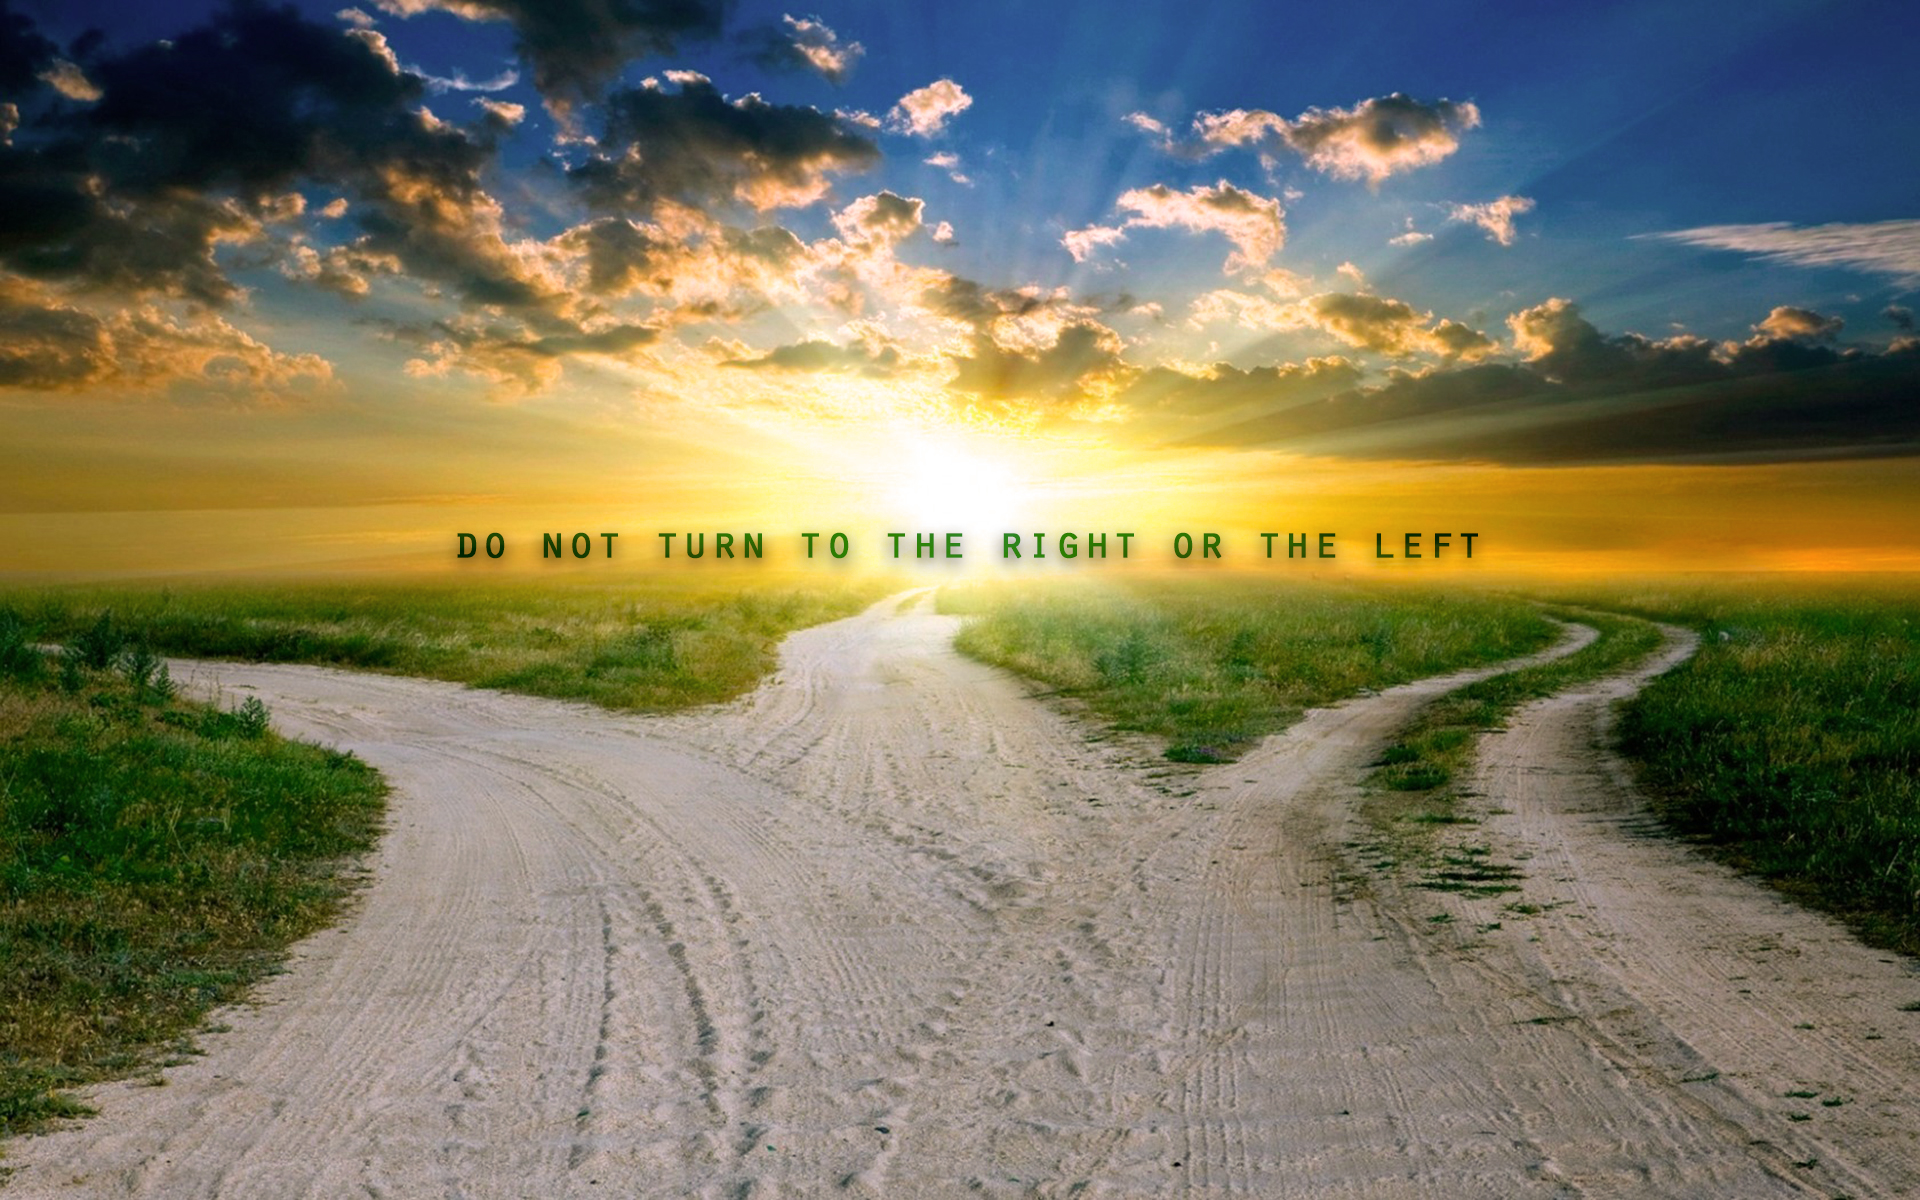 do-not-turn-to-the-right-left-keep-your-foot-from-evil-christian-wallpaper-hd_1920x1200